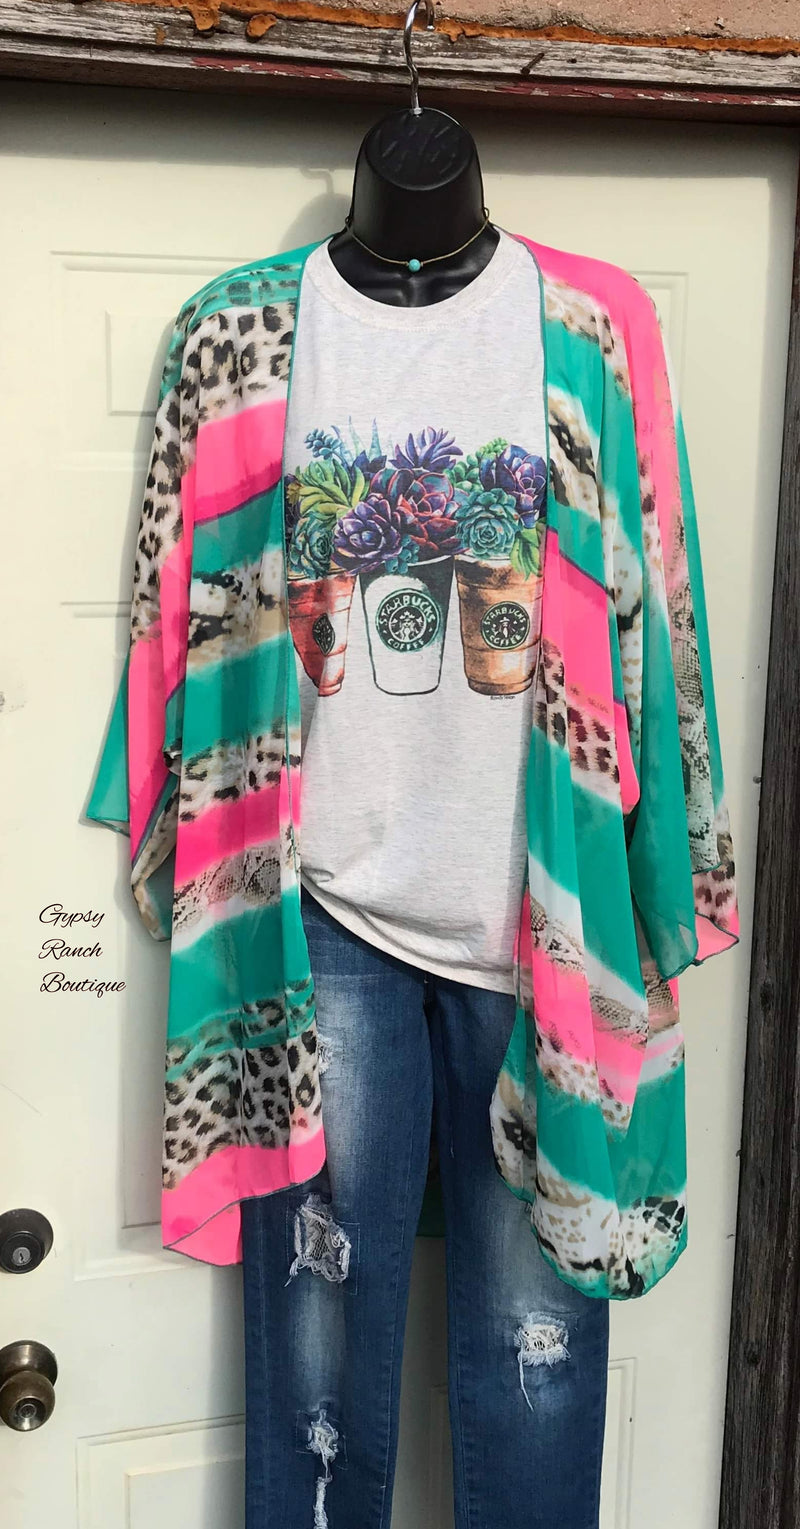 Greeley Serape Leopard Kimono - Also in Plus Size